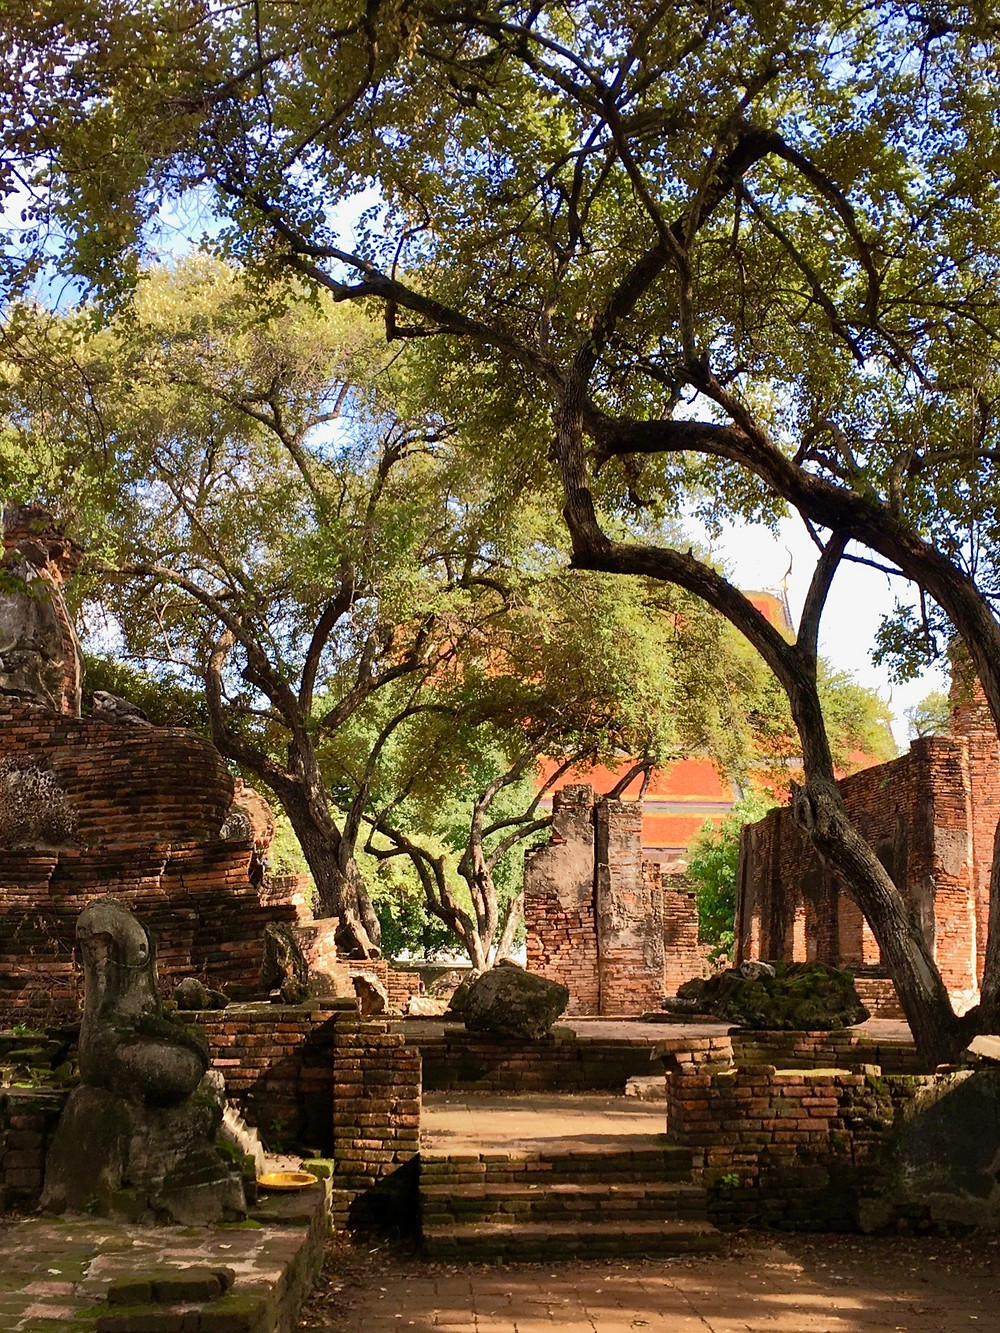 Trees provide shade over red-brick ruins and Buddha statues in Ayutthaya, Thailand